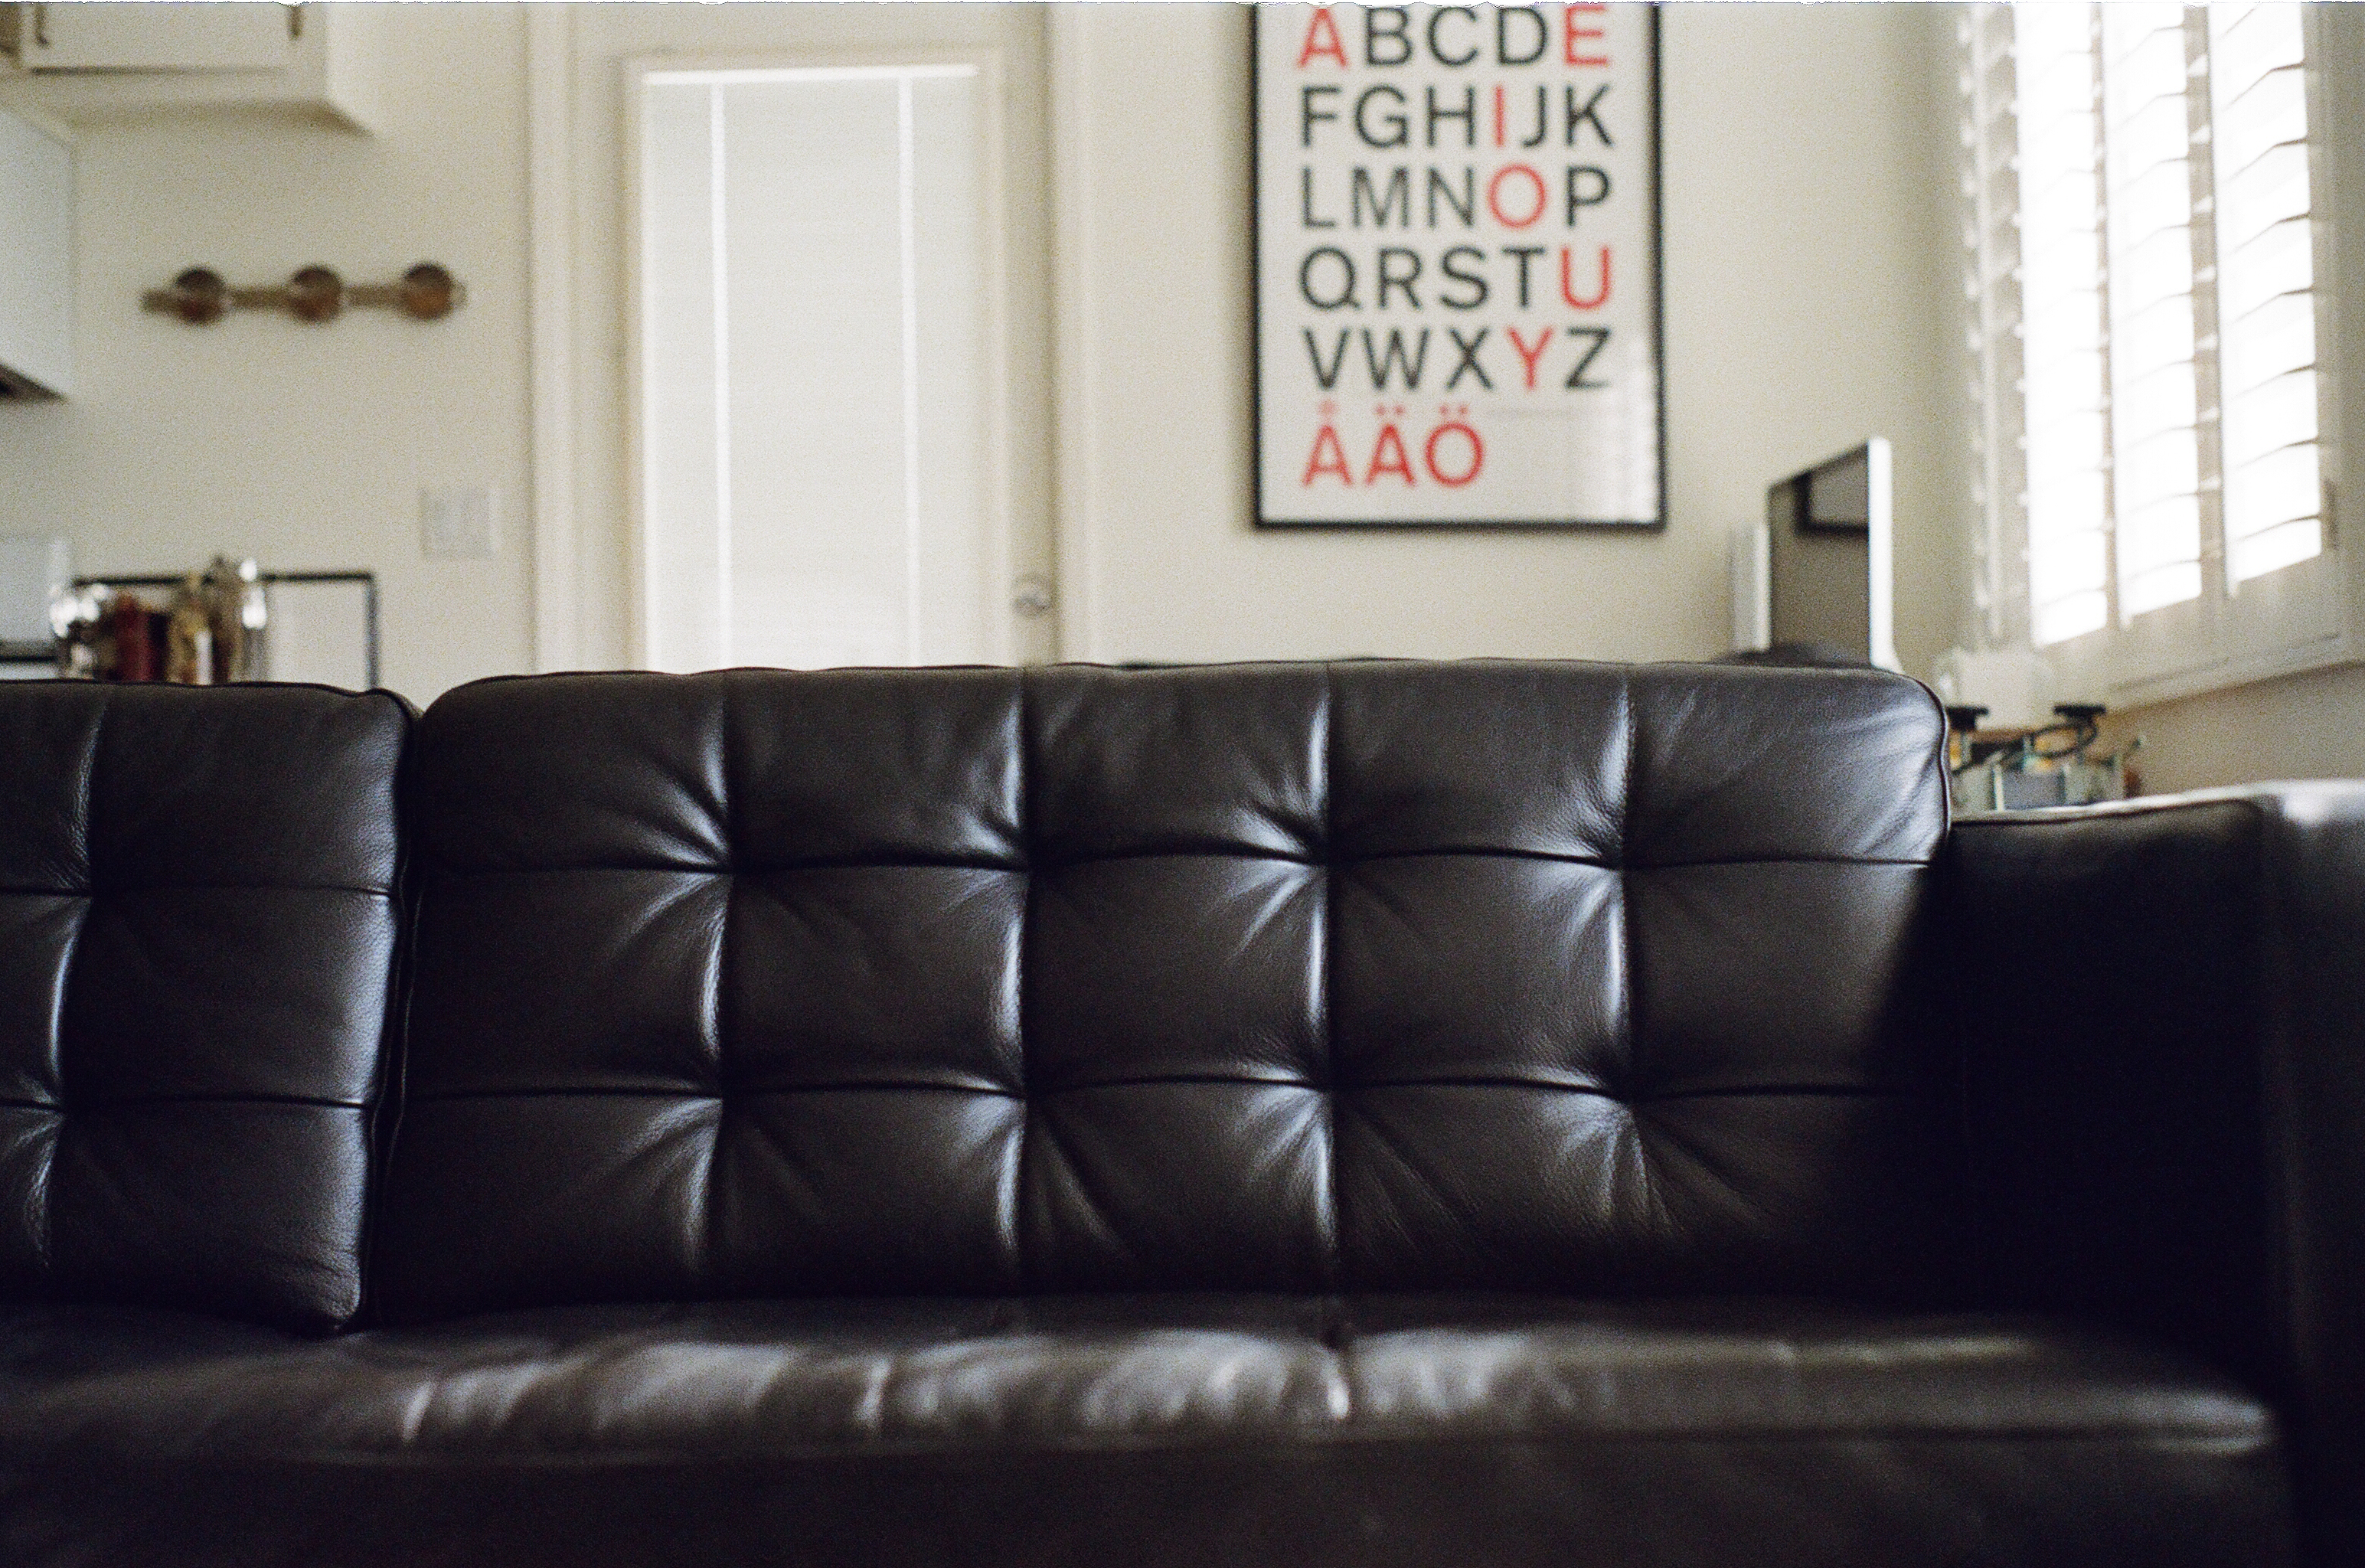 Free stock photo of couch furniture leather